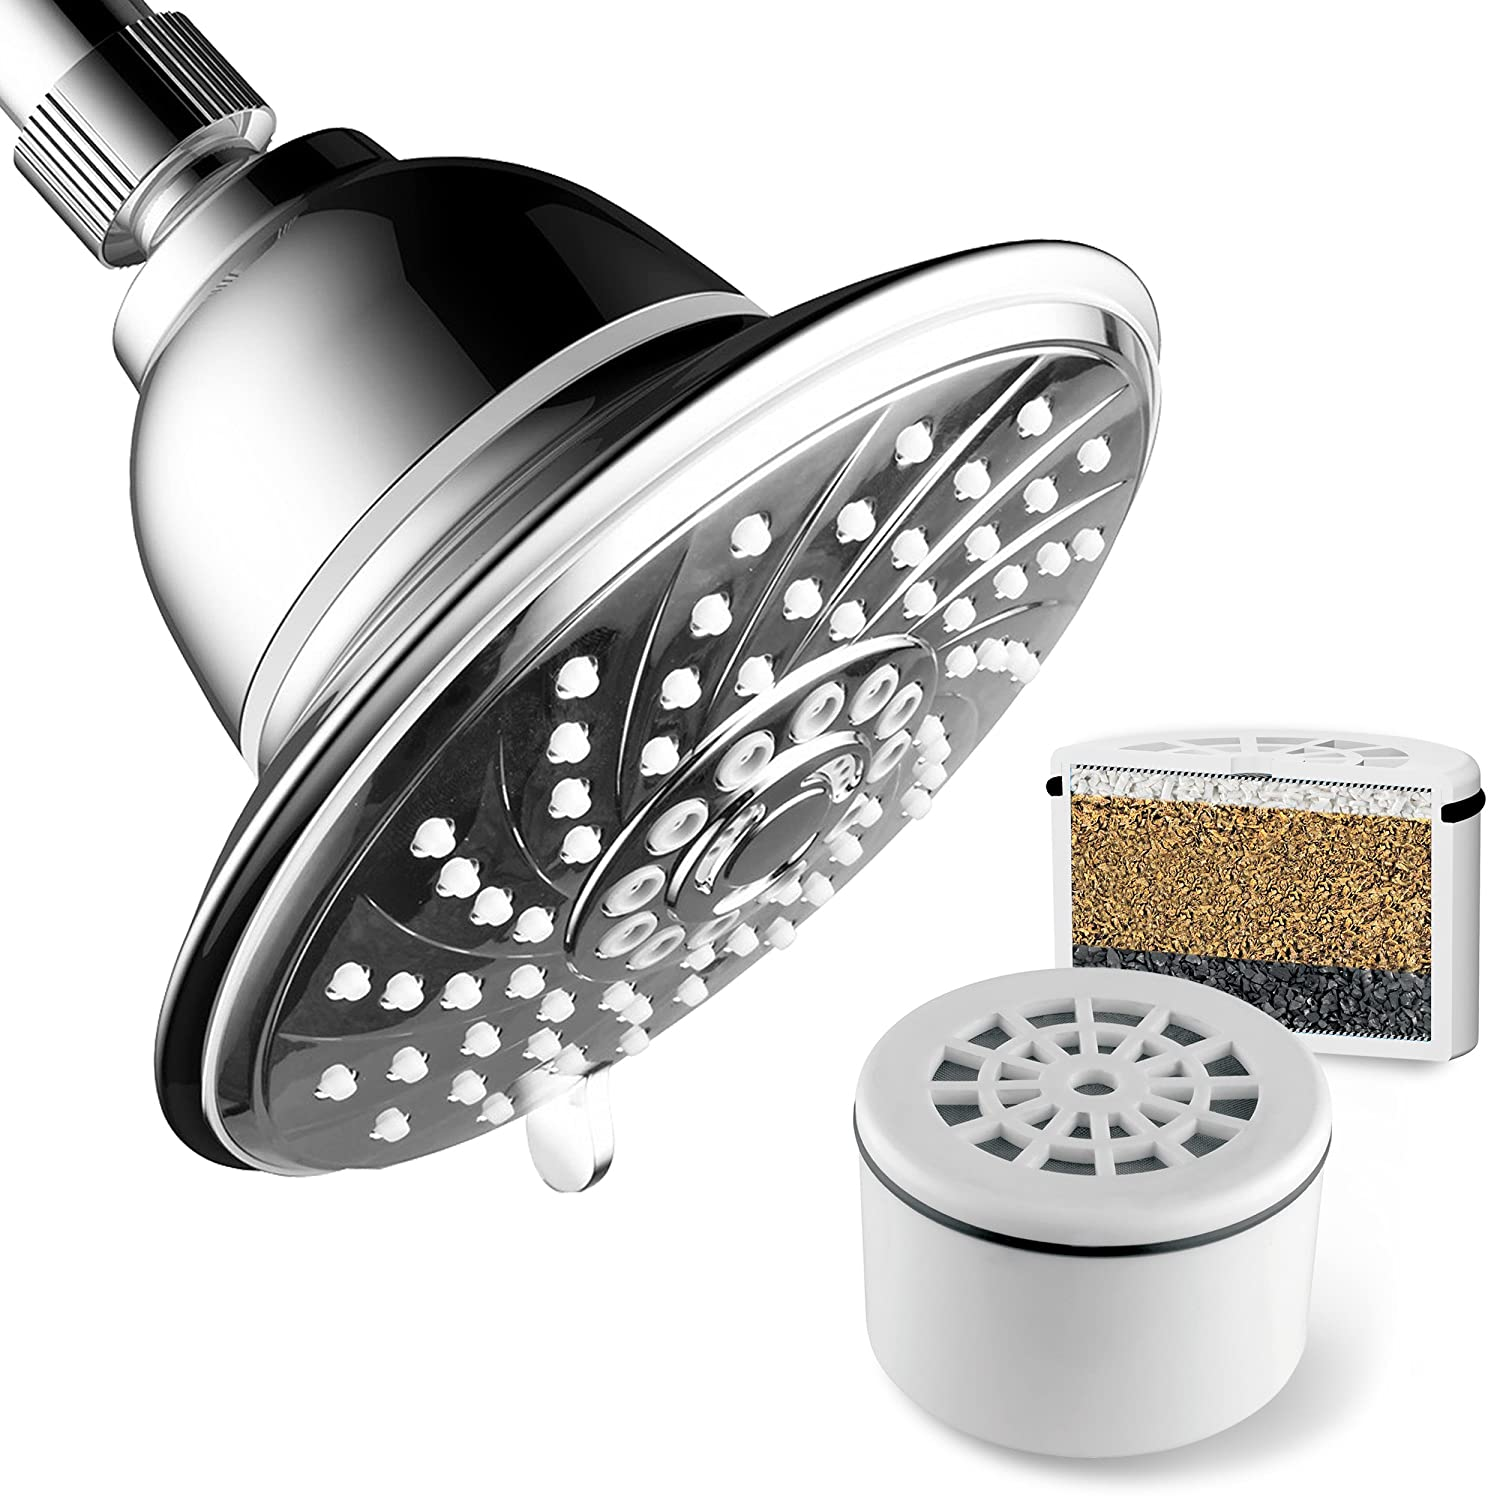 HotelSpa 2143 Extra-Large 6 Inch 6 Setting Head with New and Improved 3 Stage Shower Filter Cartridge Inside